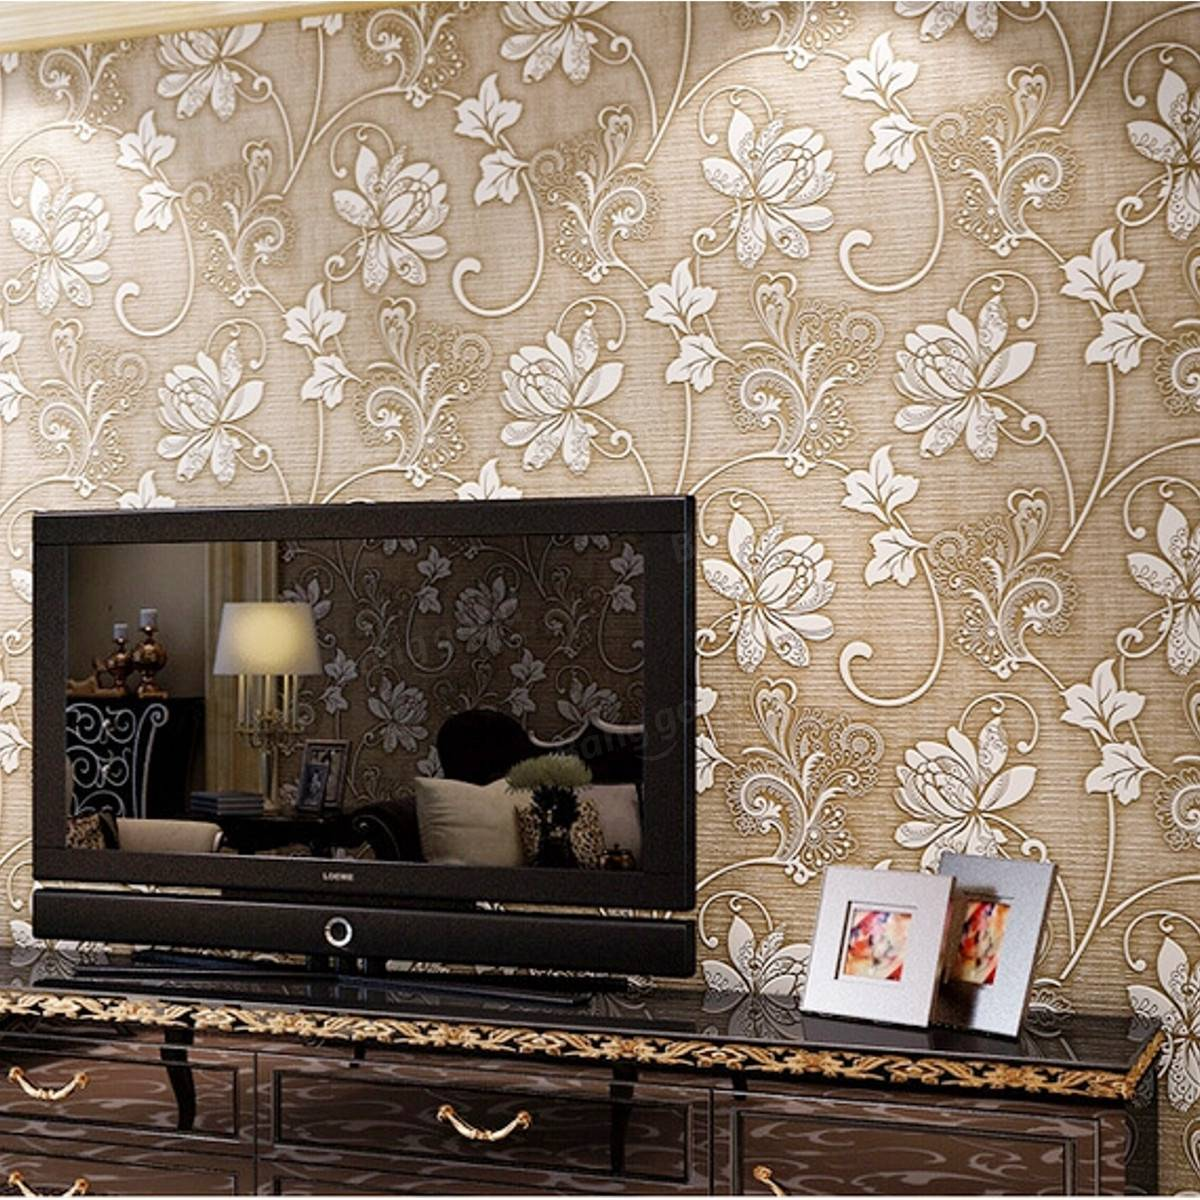 10M 3Ft Floral 3D Non Woven Wallpaper Roll Embossed Textured